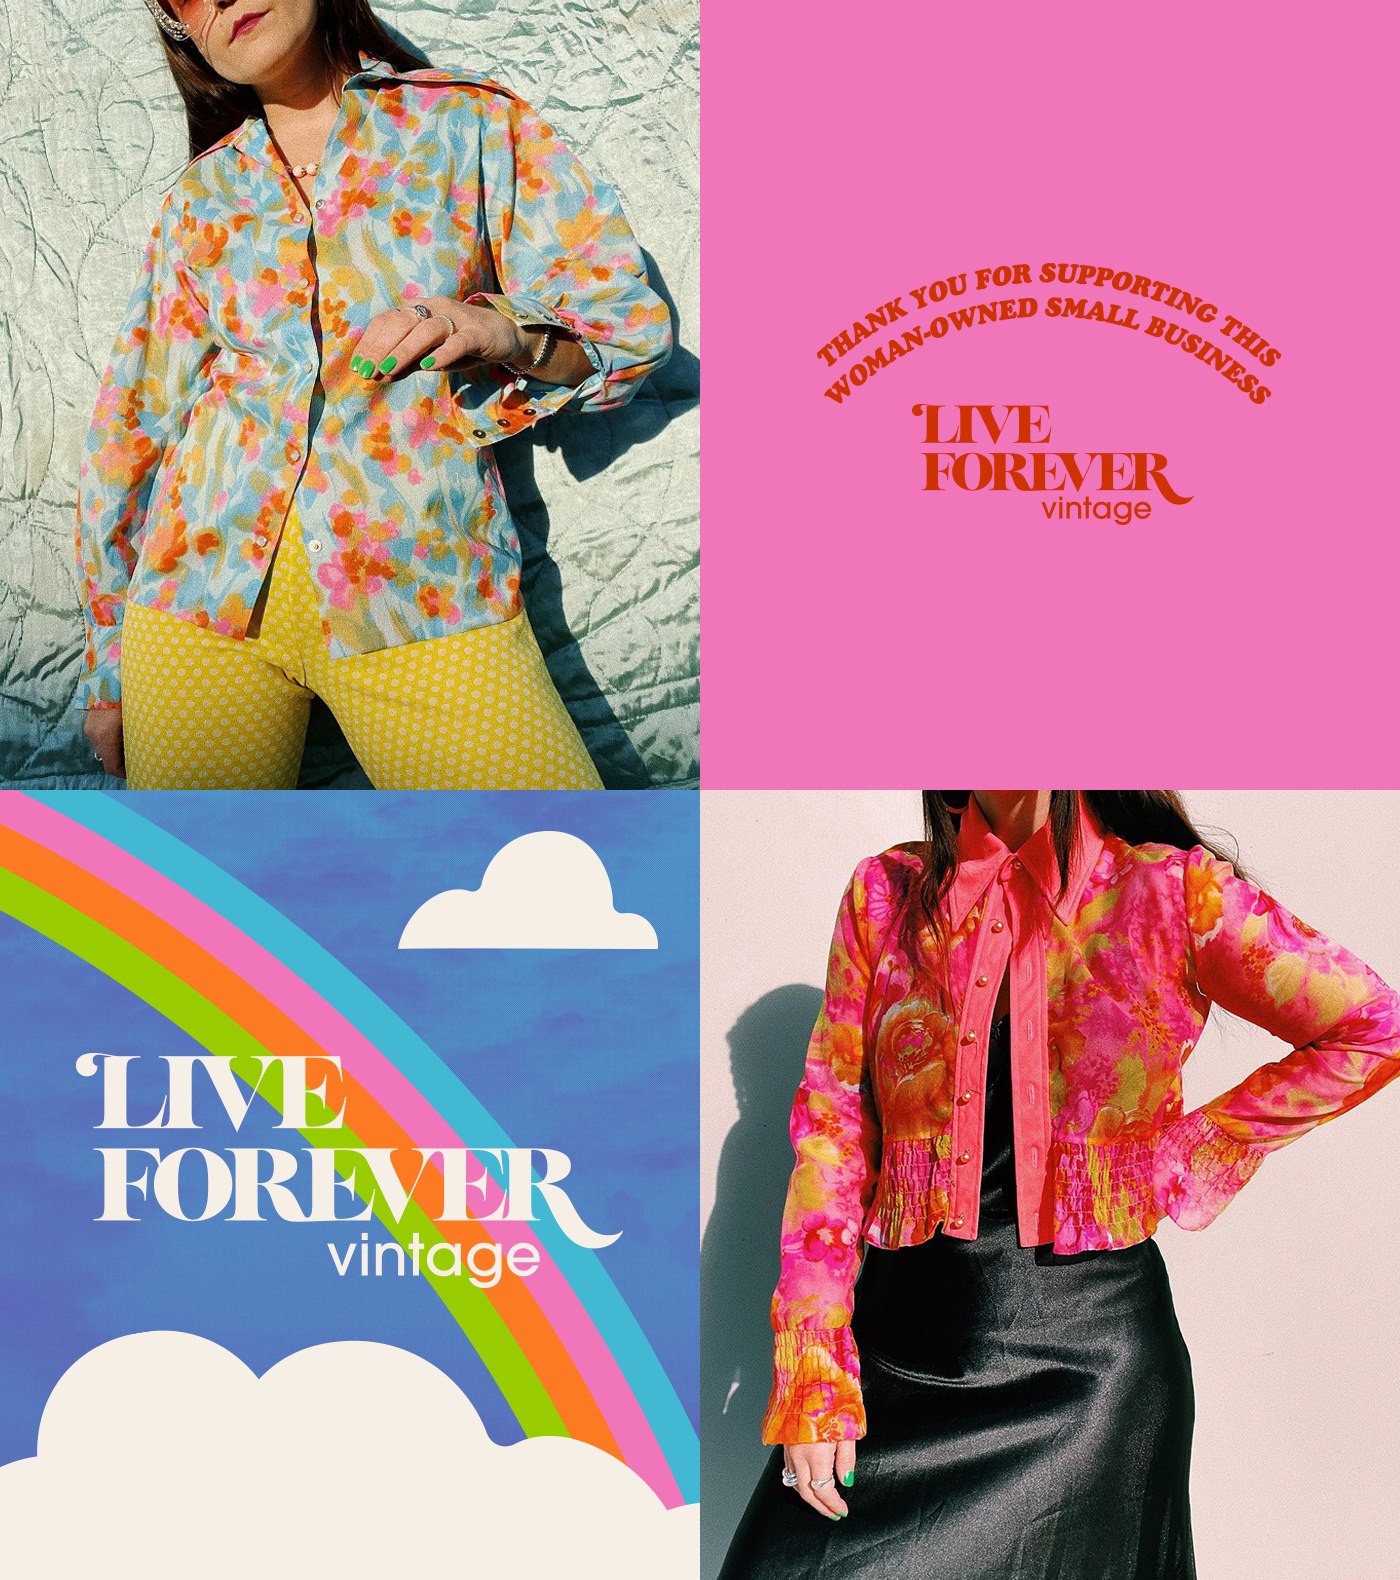 Outfit shots and Live Forever Vintage branding elements